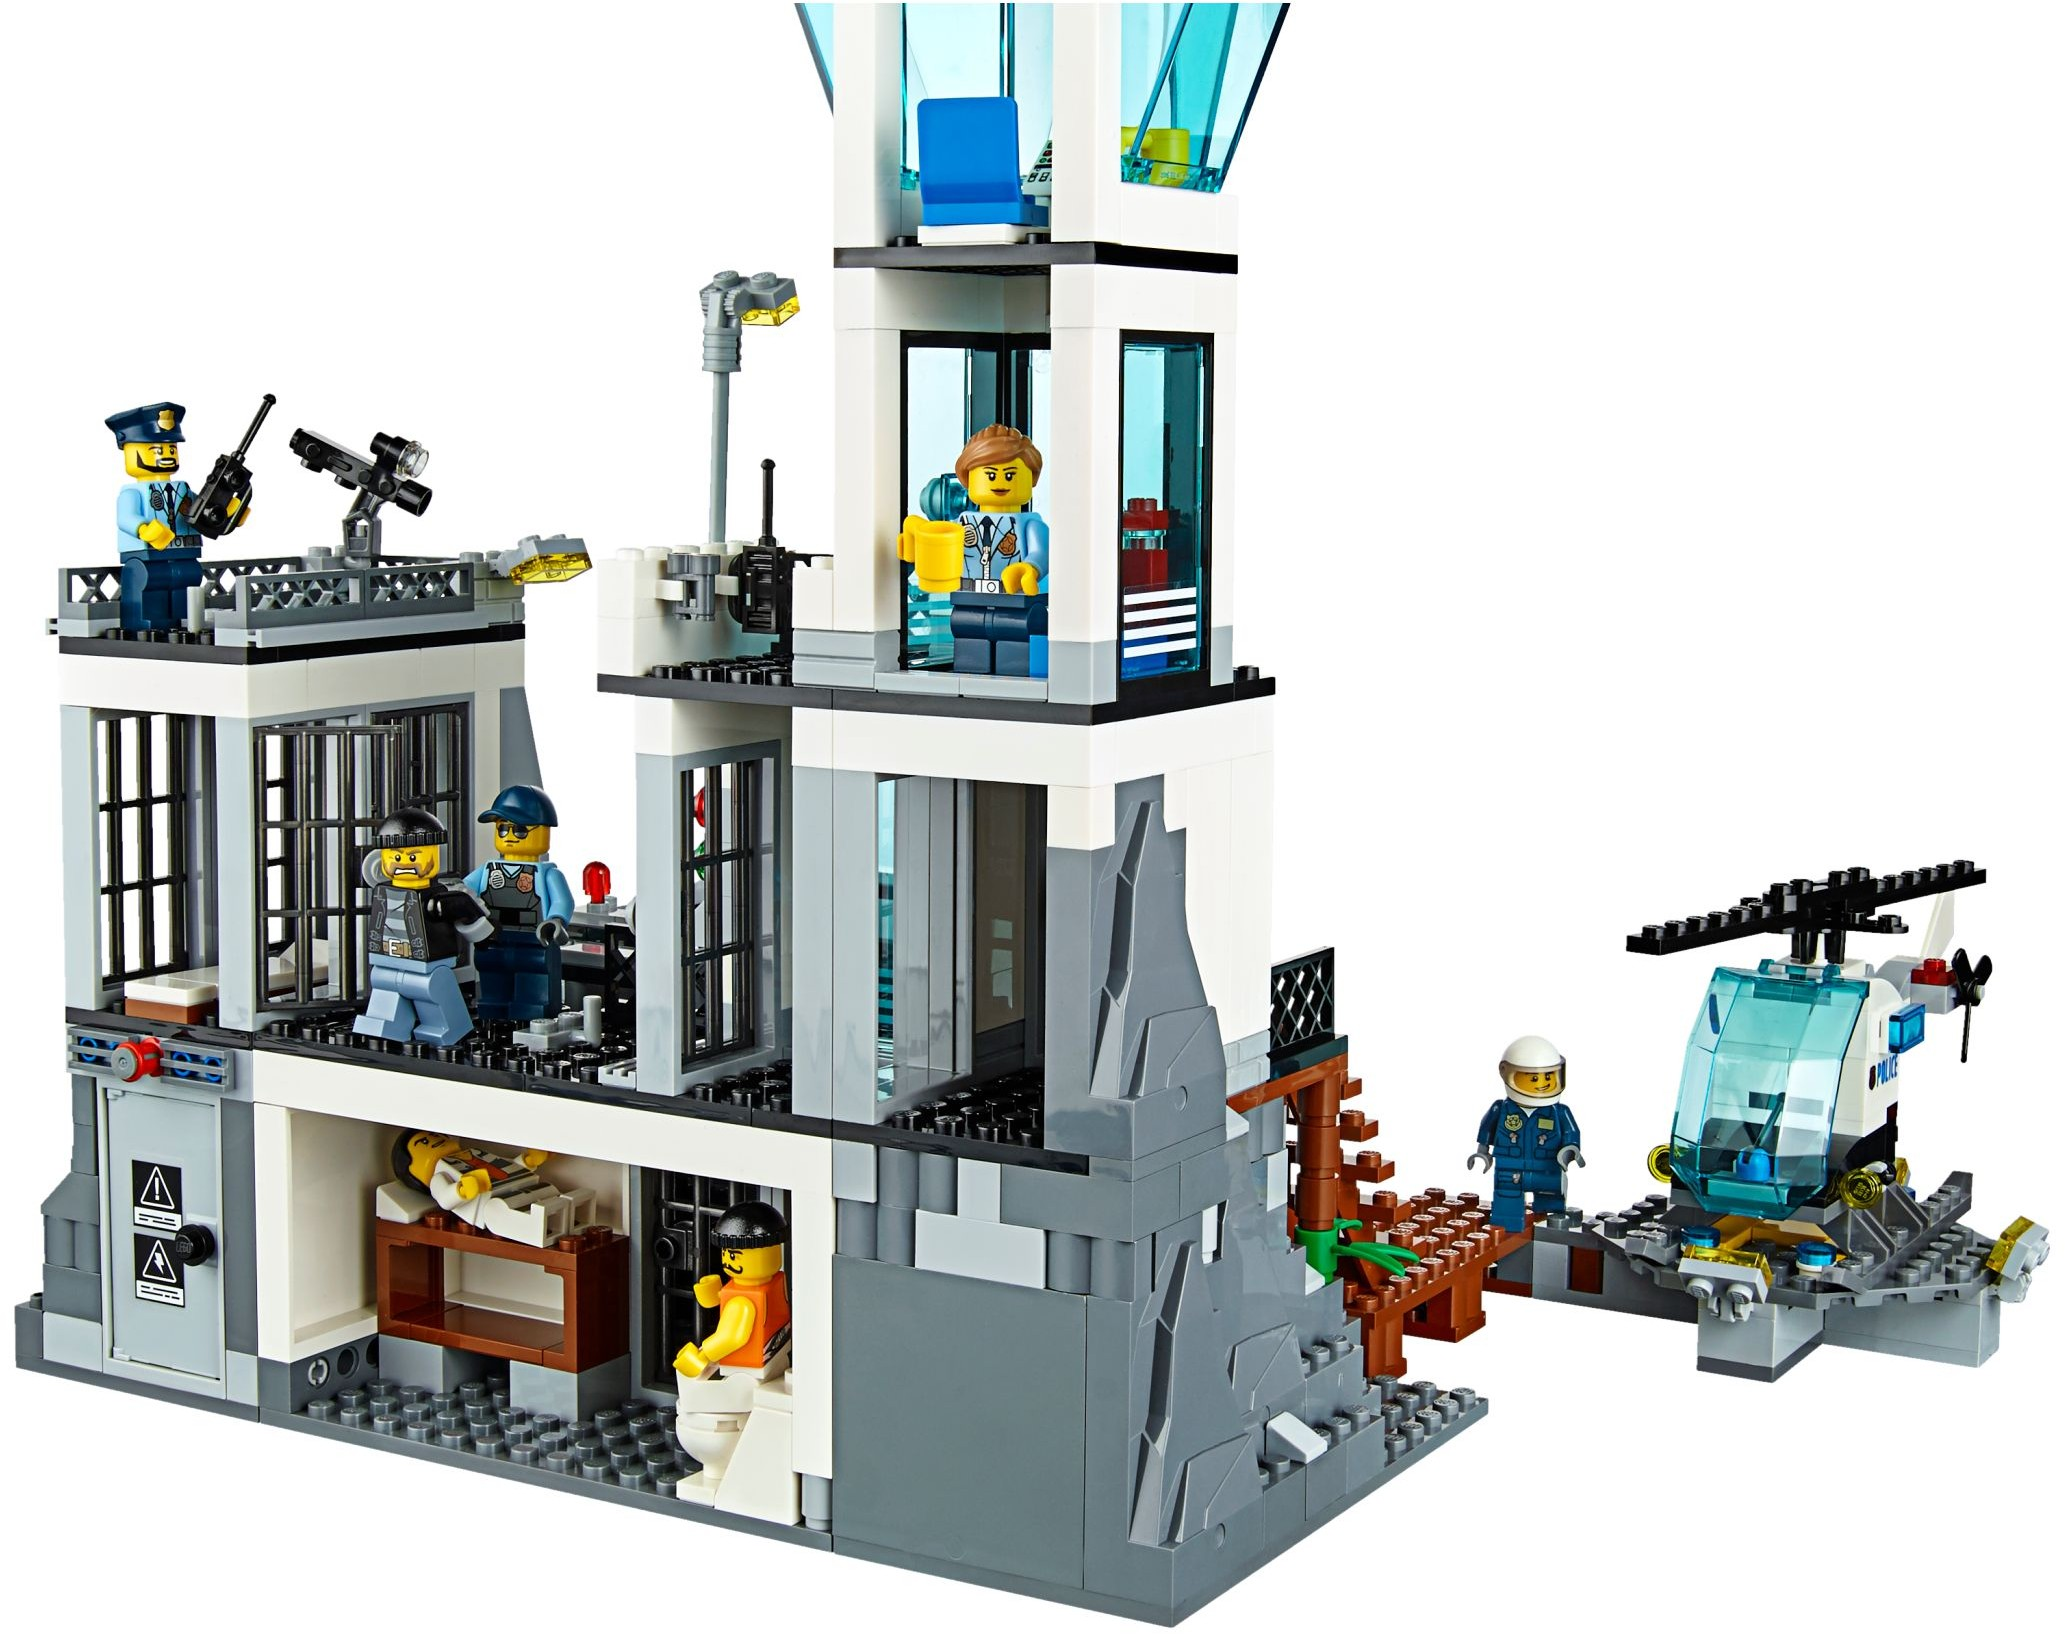 lego city 2016 prison island 60130 set photos preview. Black Bedroom Furniture Sets. Home Design Ideas